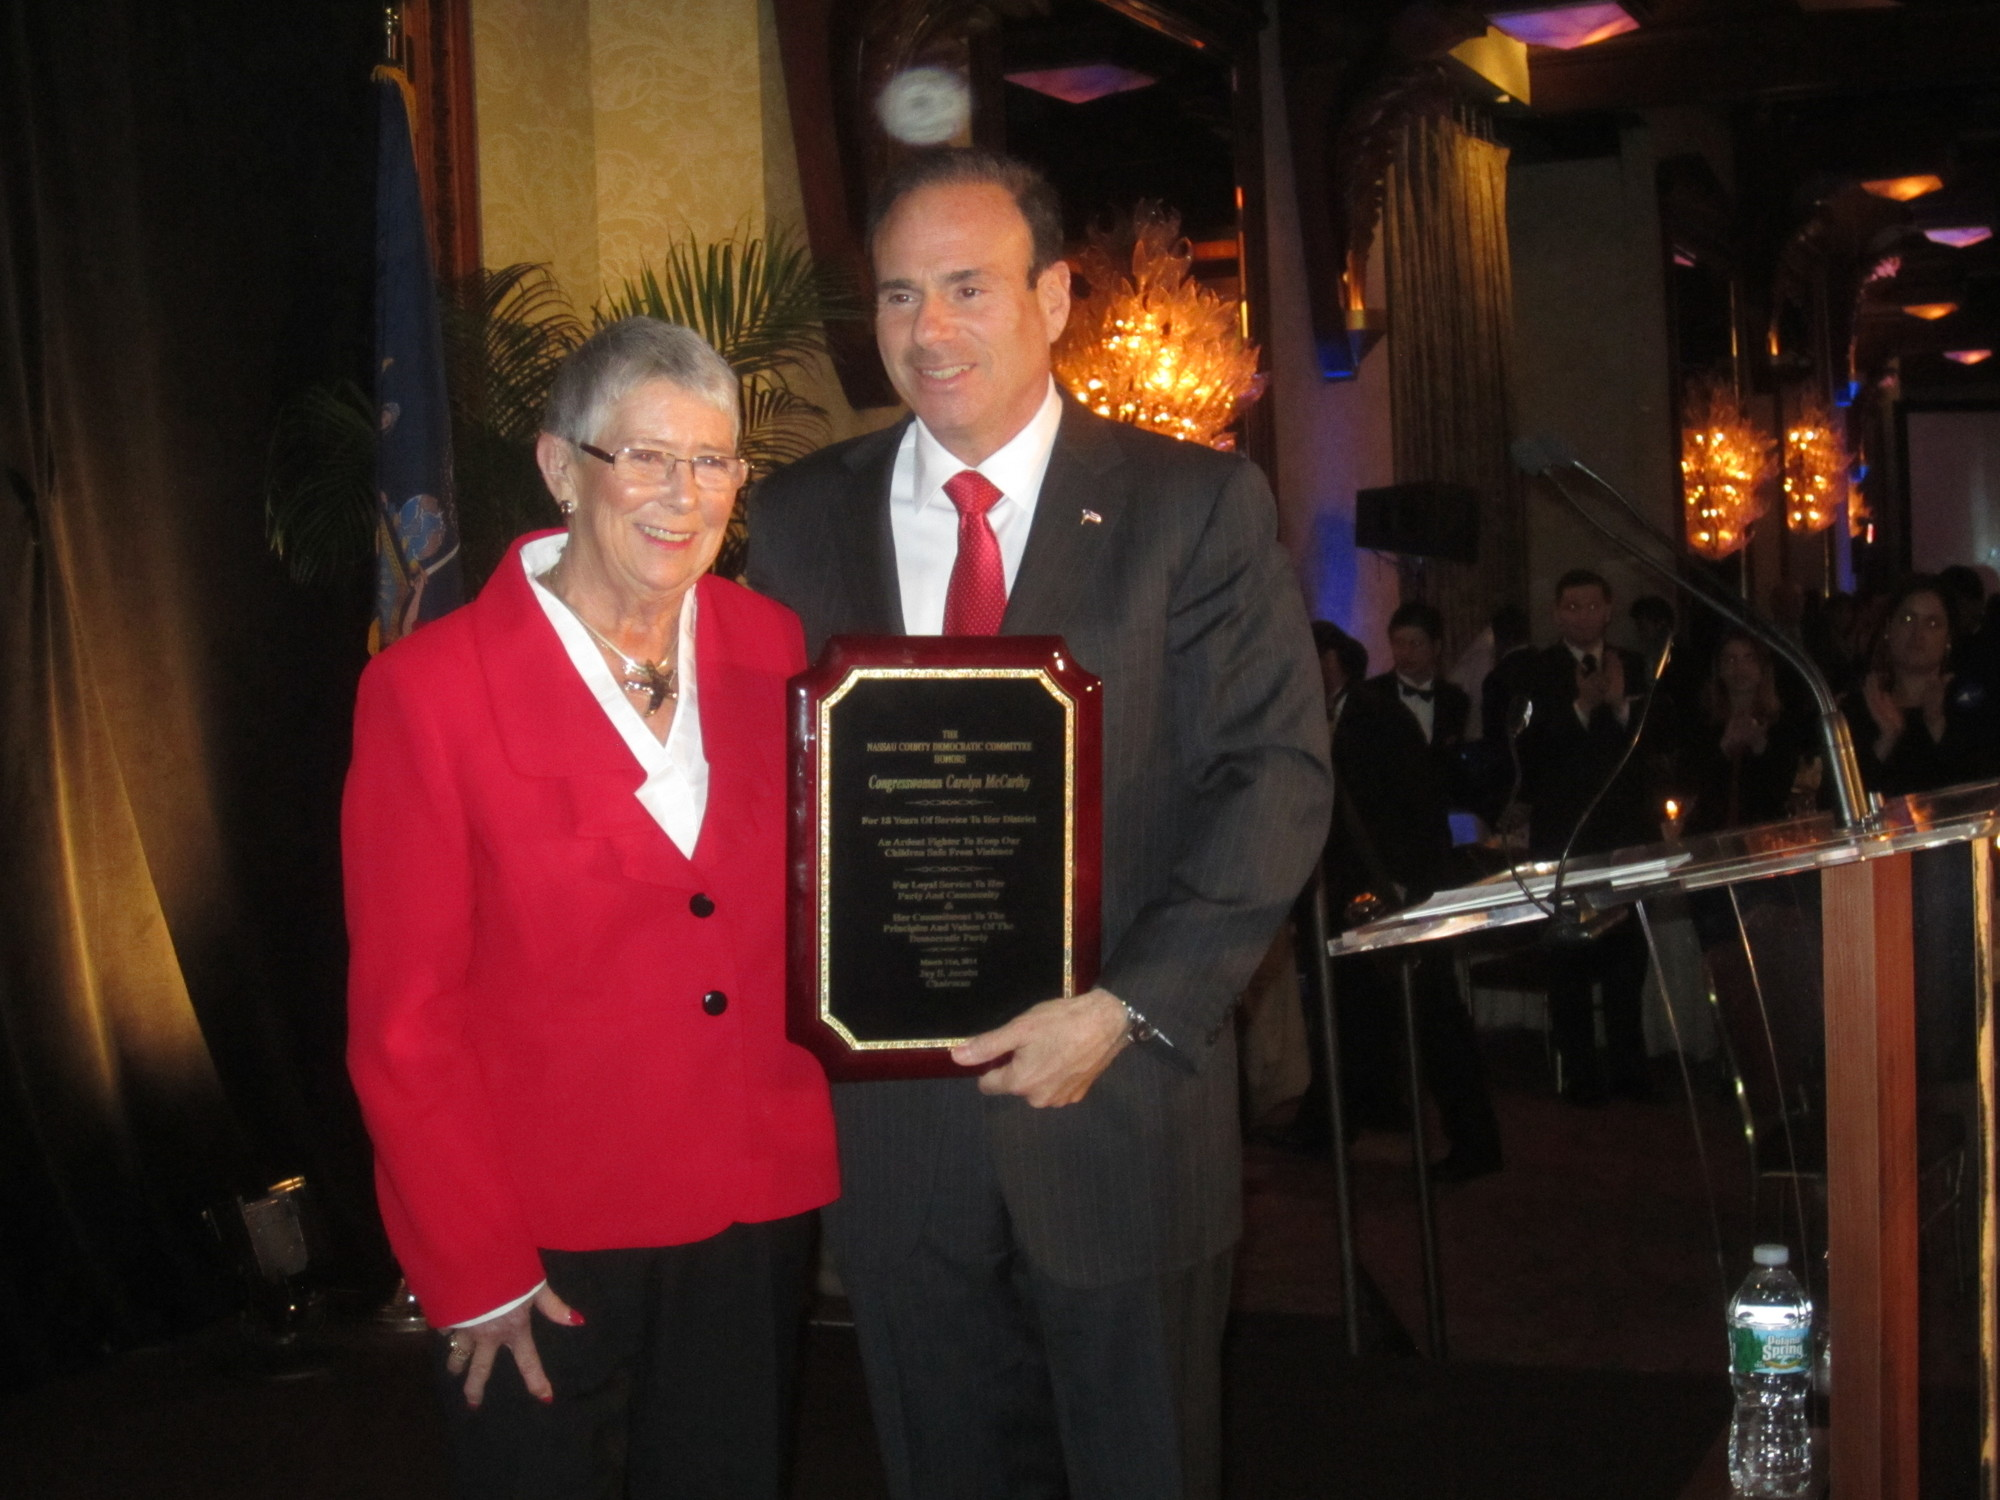 U.S. Rep. Carolyn McCarthy accepted a plaque from Jay Jacobs, the Nassau County Democratic Committee chairman, during the Nassau County Democratic Committee's annual spring dinner at the Crest Hollow Country Club on Monday.